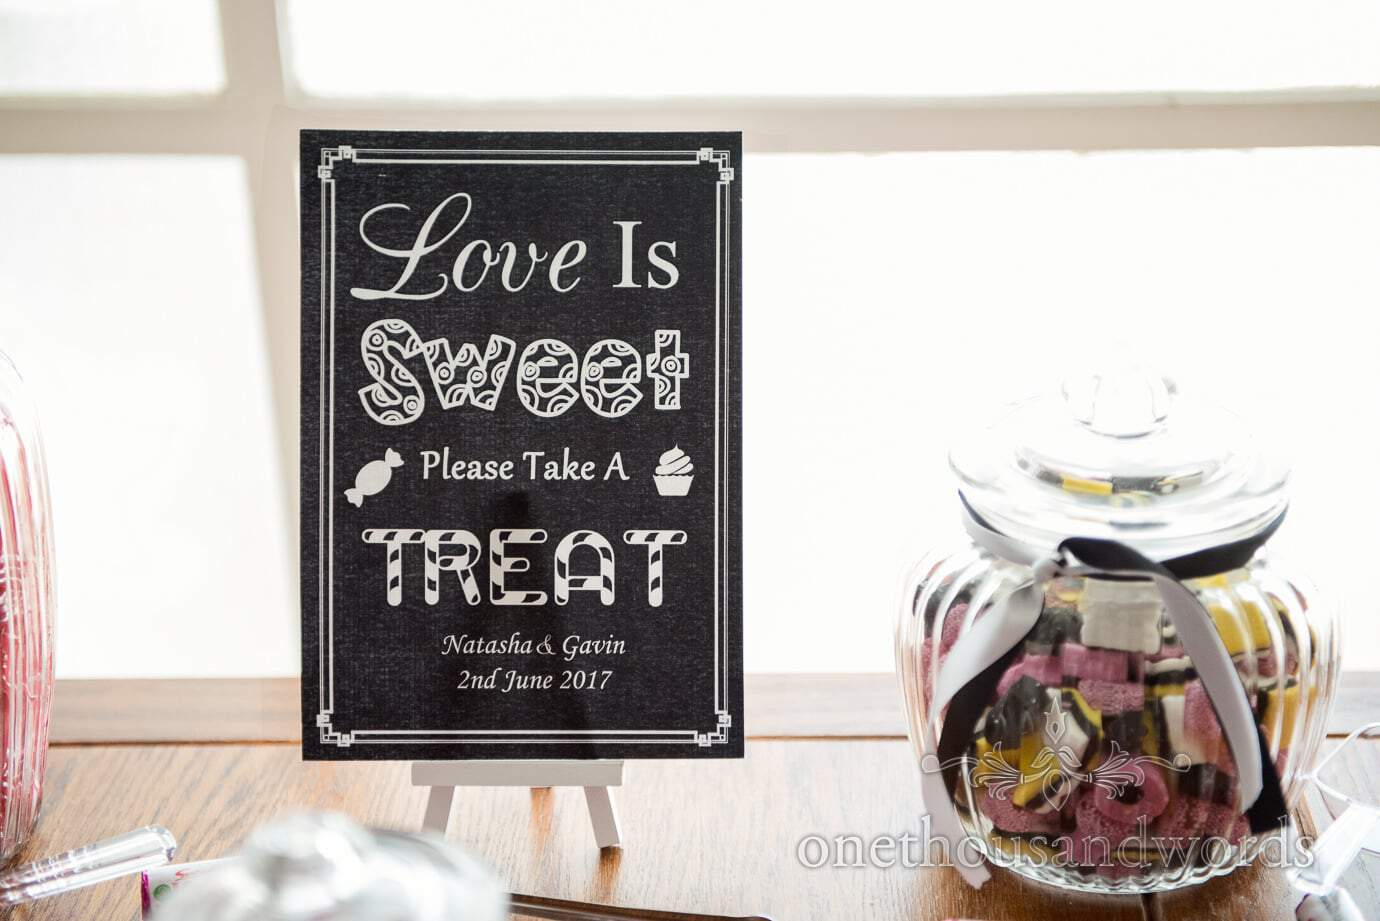 Love is sweet take a treat black and white sign on mini easel with wedding sweet jar